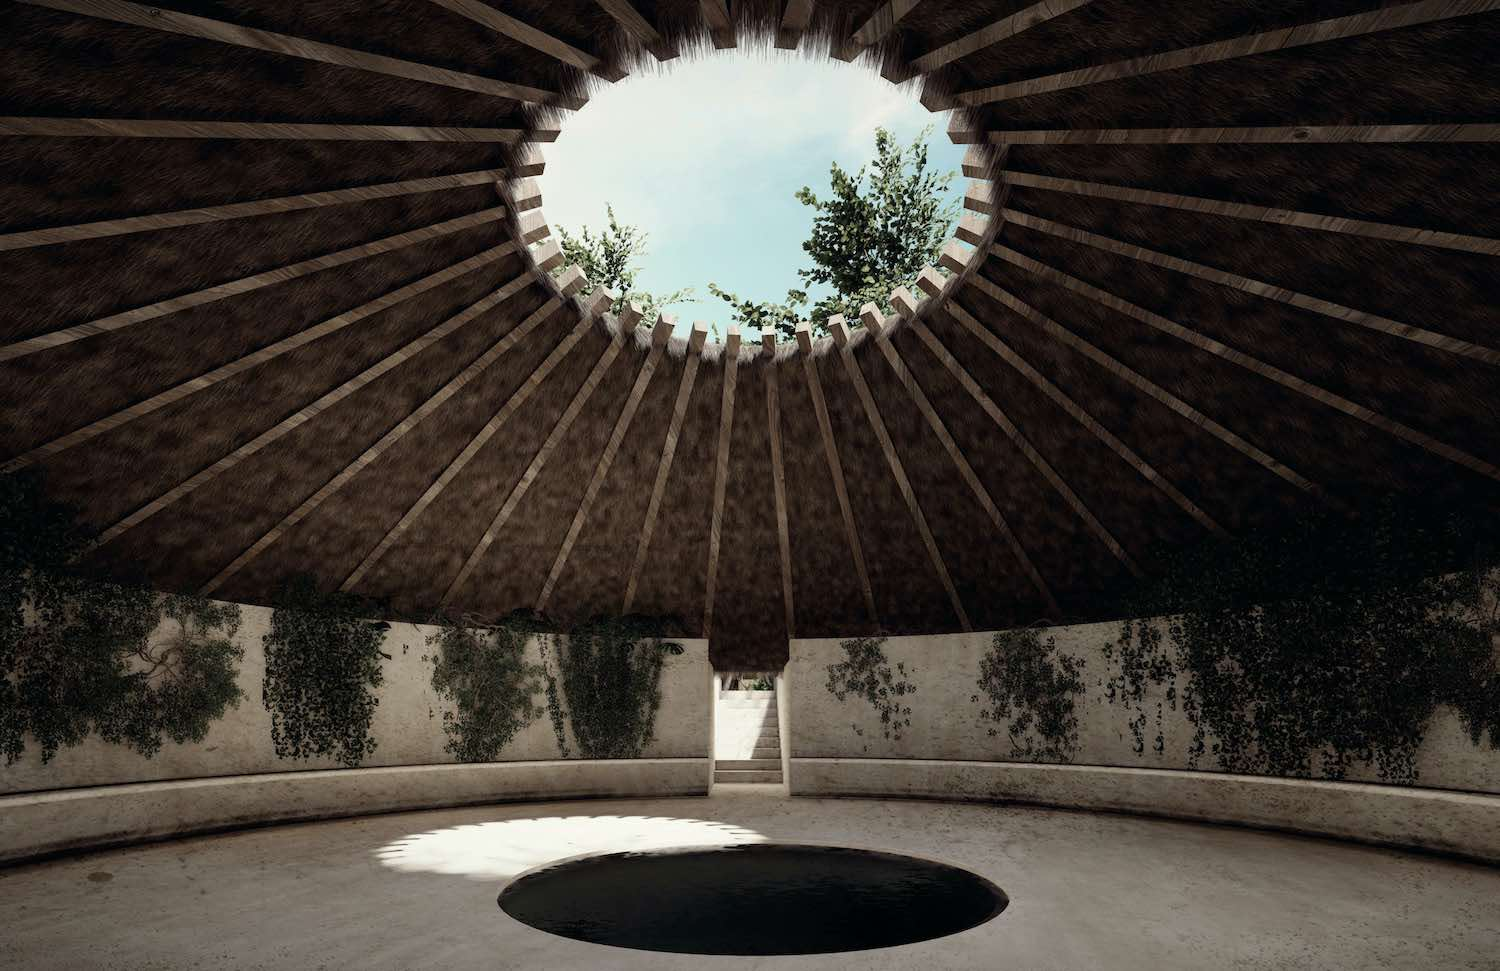 yoga room with open skylight in roof